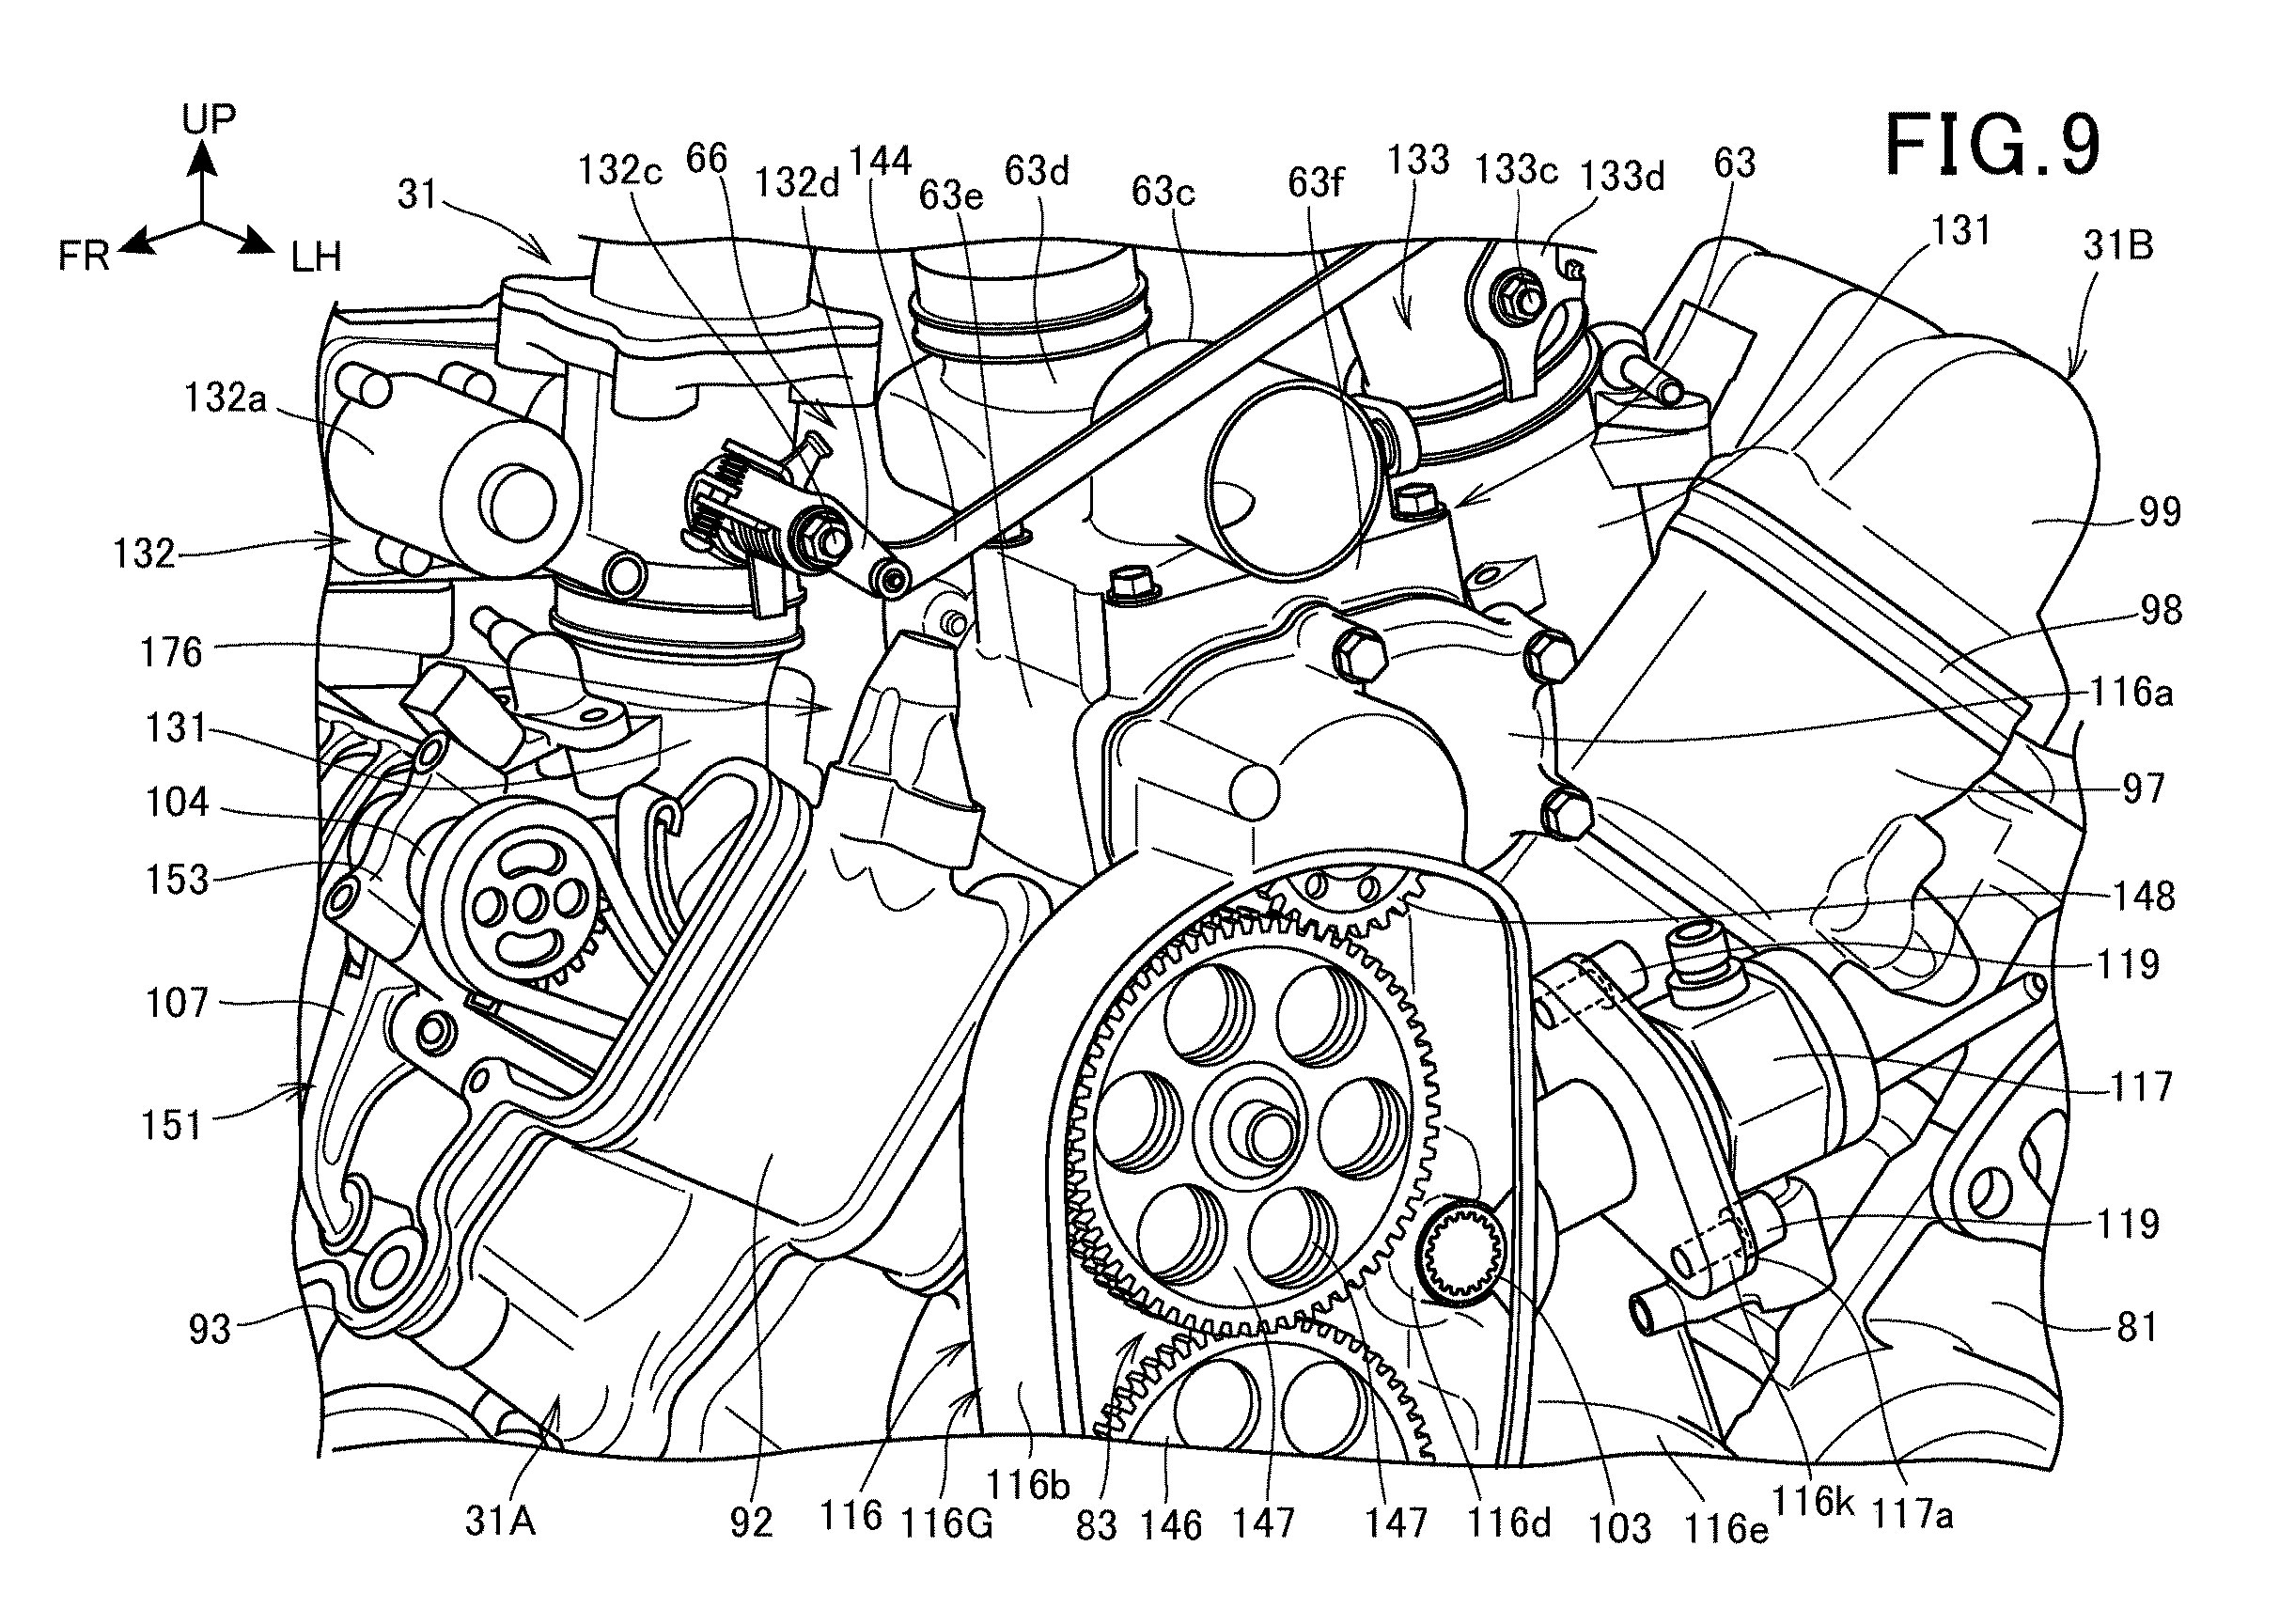 Honda Developing Supercharged V Twin With Direct Injection Engine Supercharger Diagram And If A Isnt Enough The Patents Also Describe Fuel System To Spraying Directly Into Cylinder